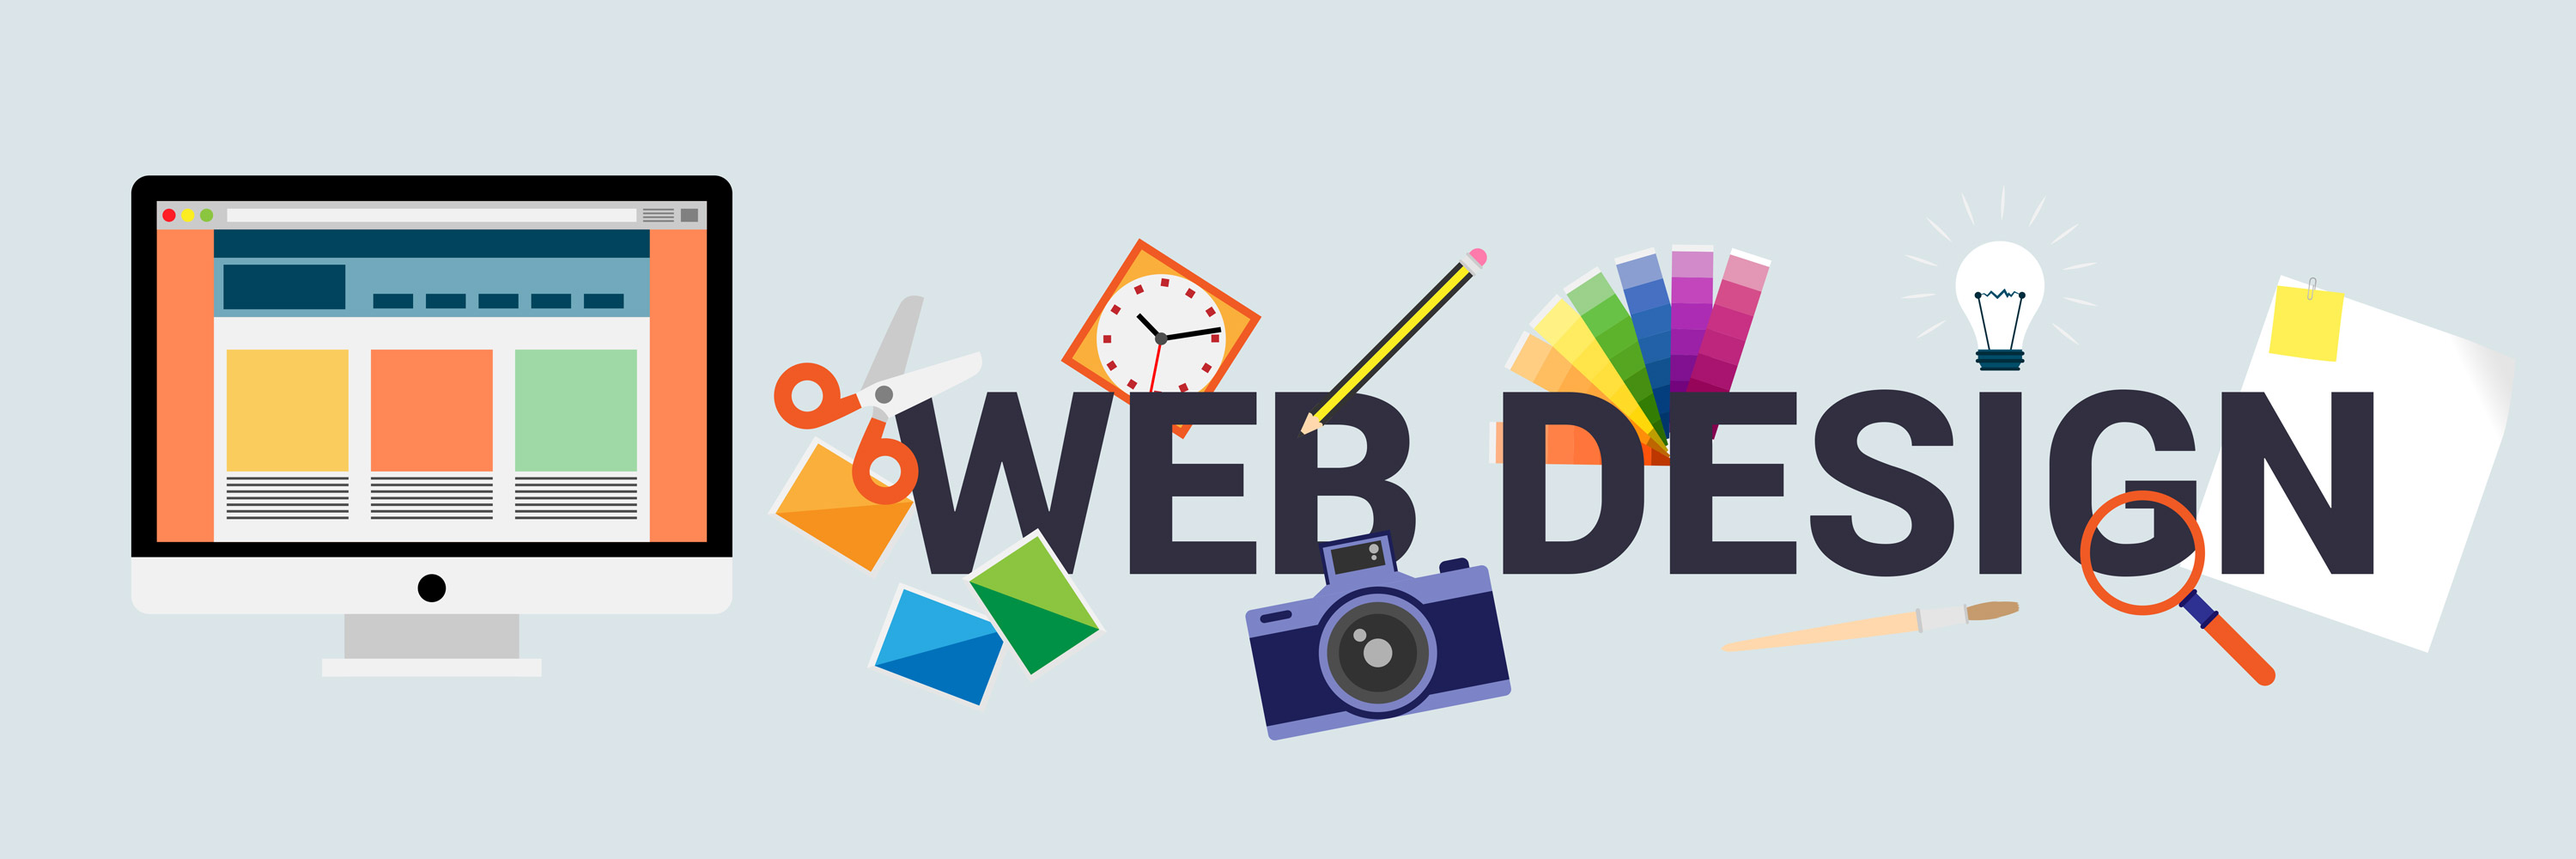 Professional Yet Affordable Web Design Services Near You in Brisbane